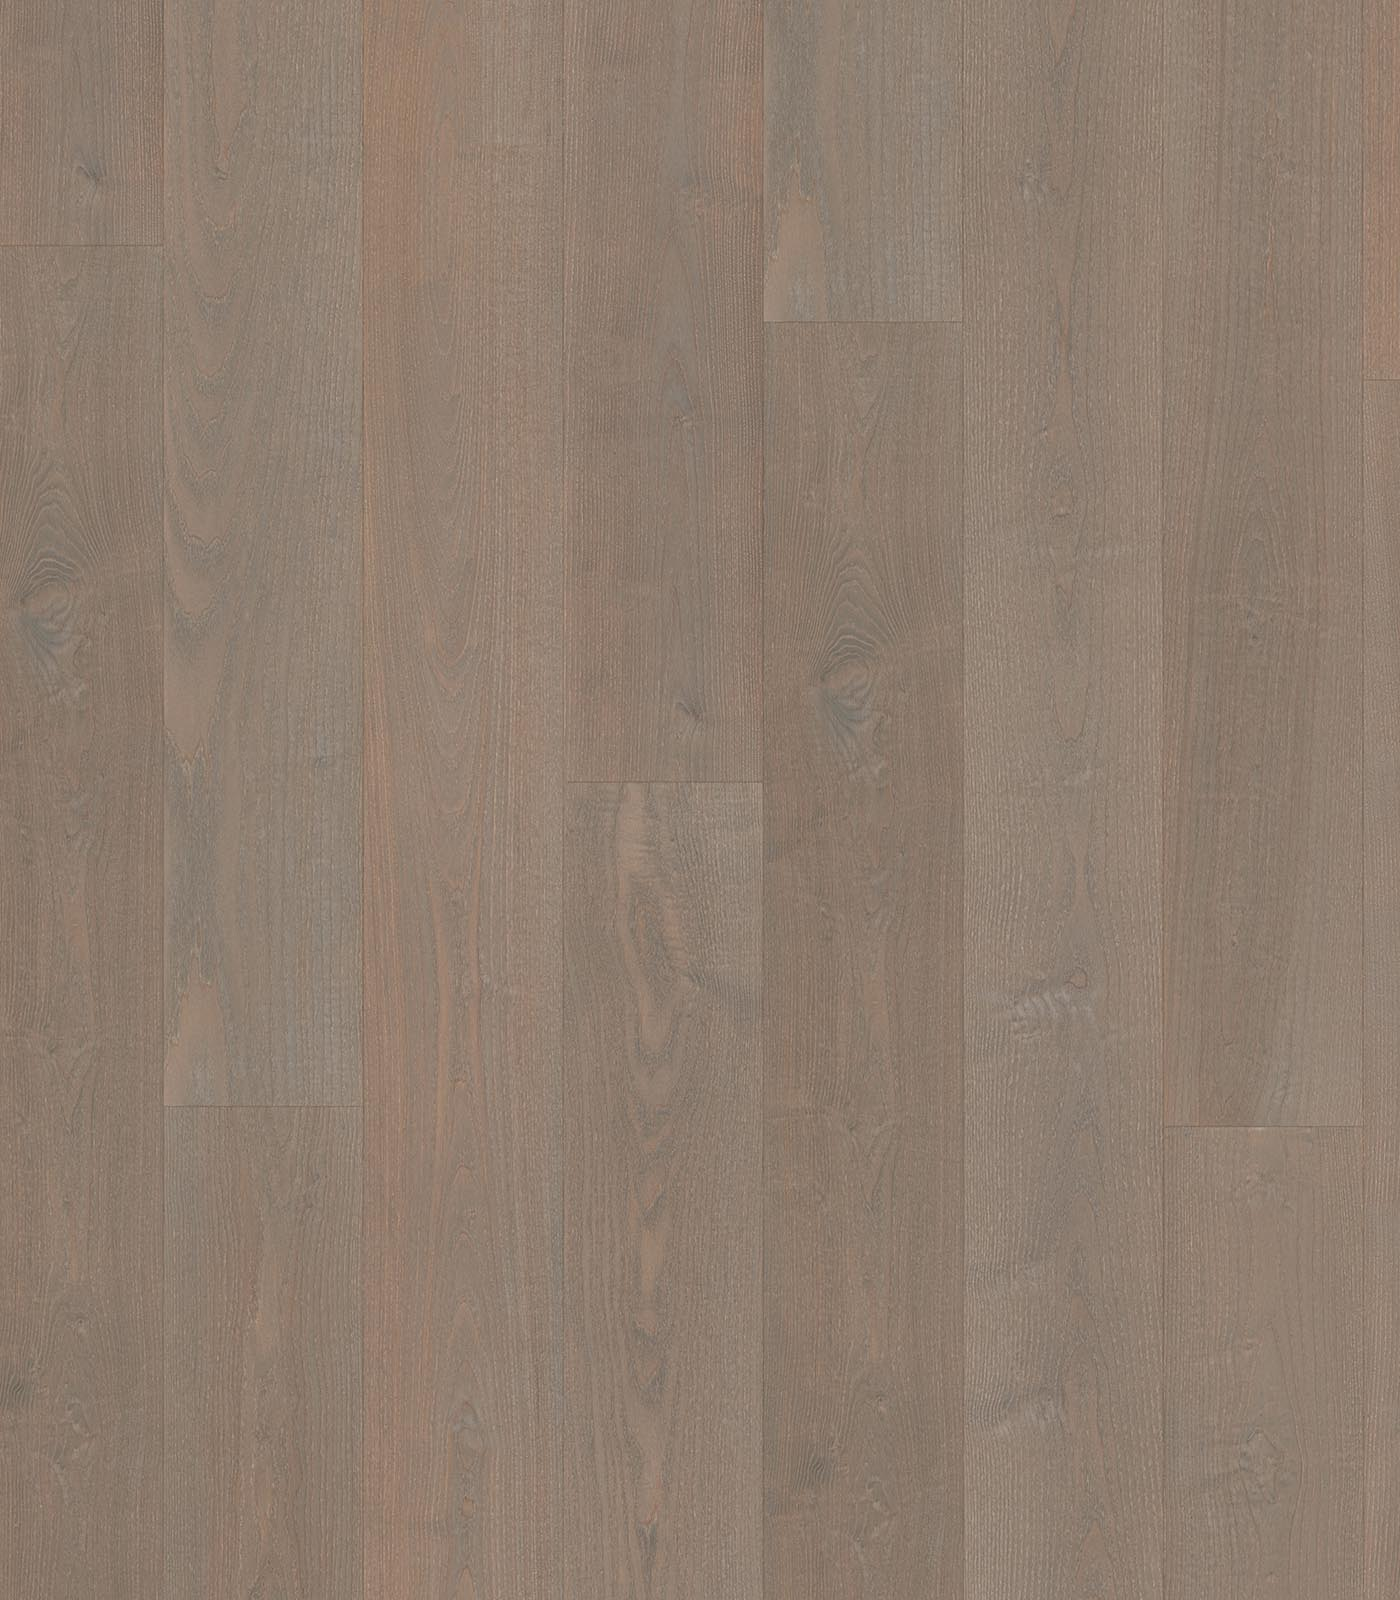 Budapest - Engineered European Ash Flooring - After Oak Collection - Flat